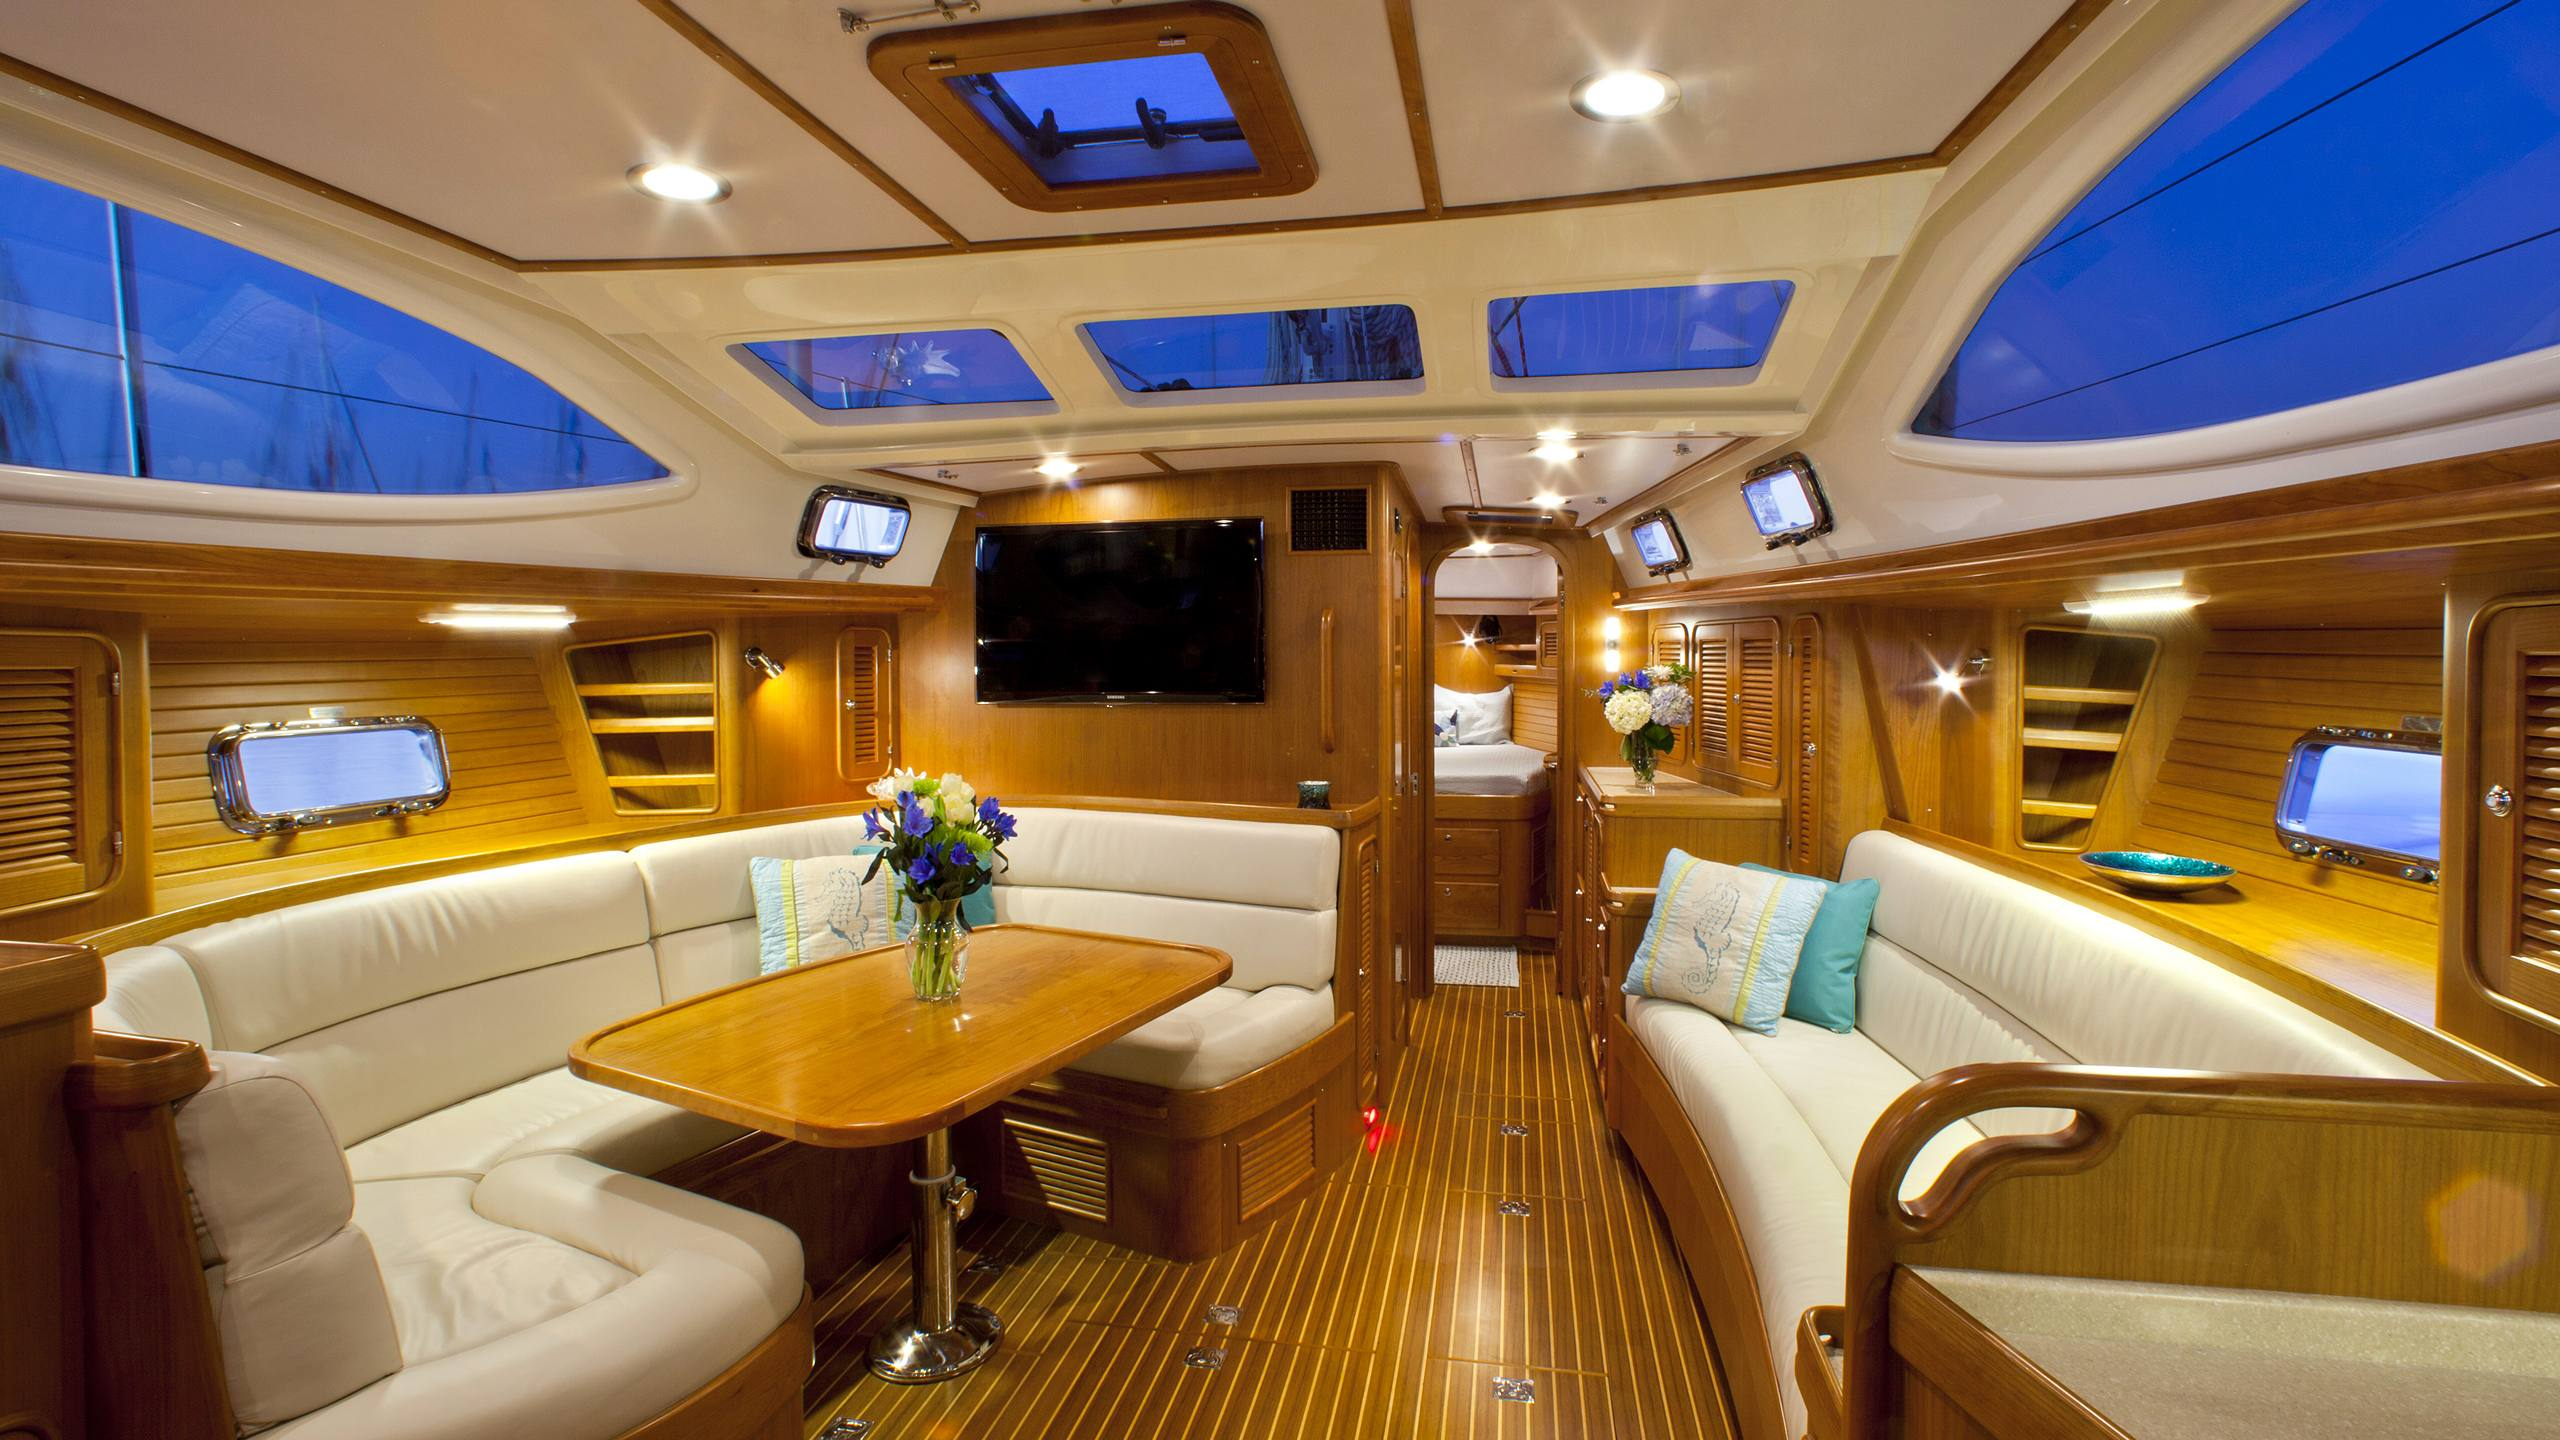 Passport Yachts are as beautiful inside as they are capable outside.